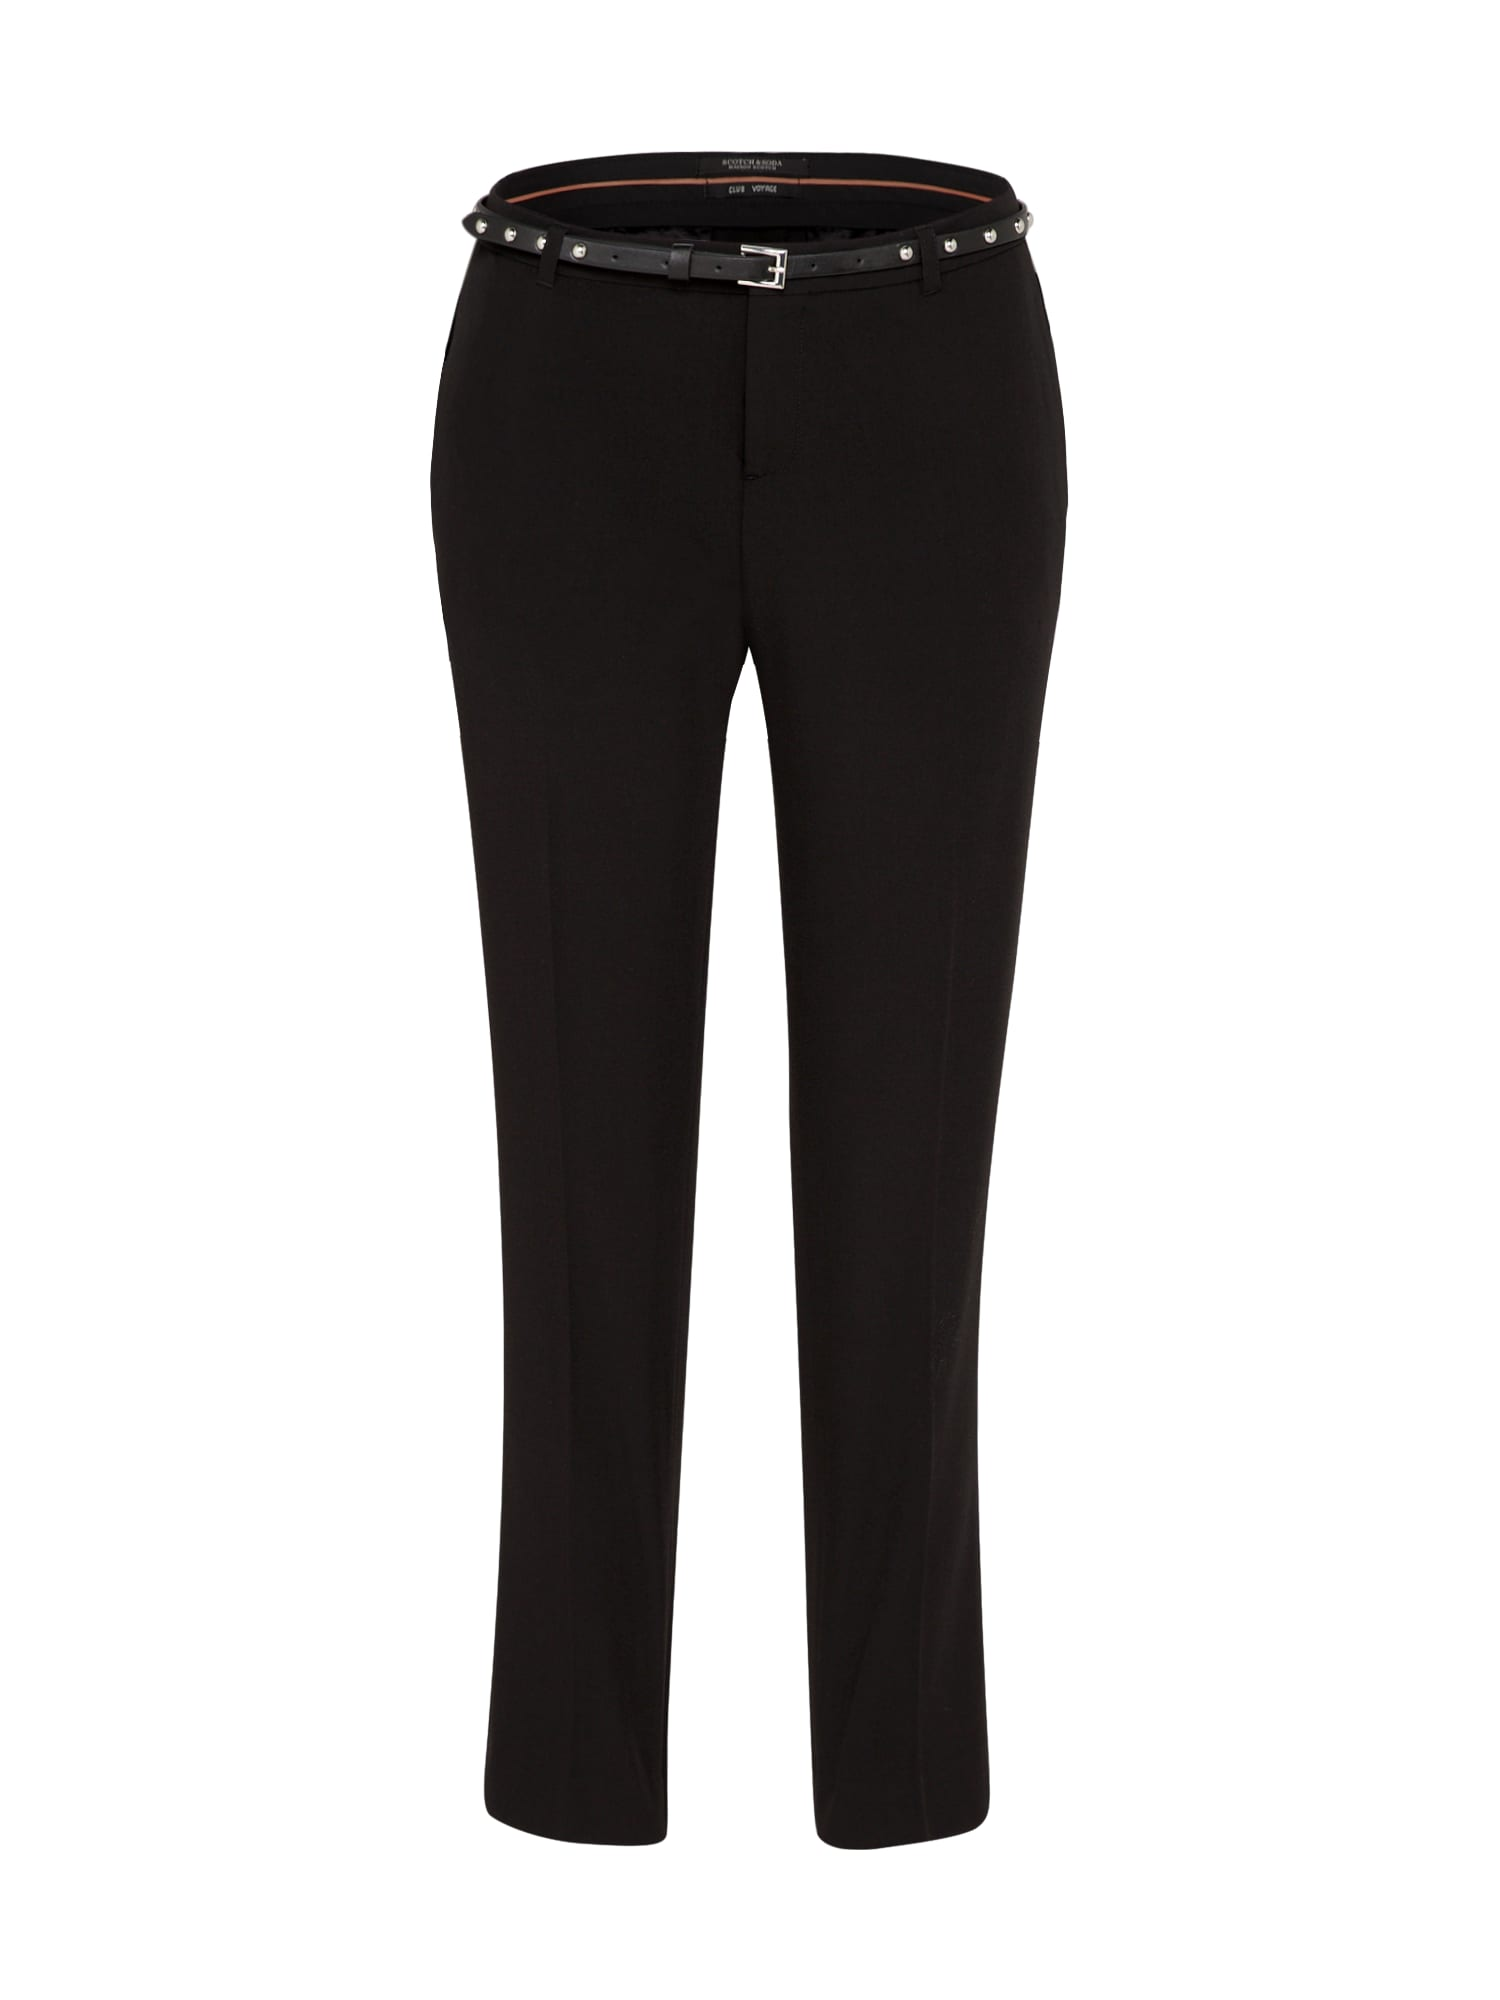 SCOTCH  and  SODA Dames Pantalon zwart